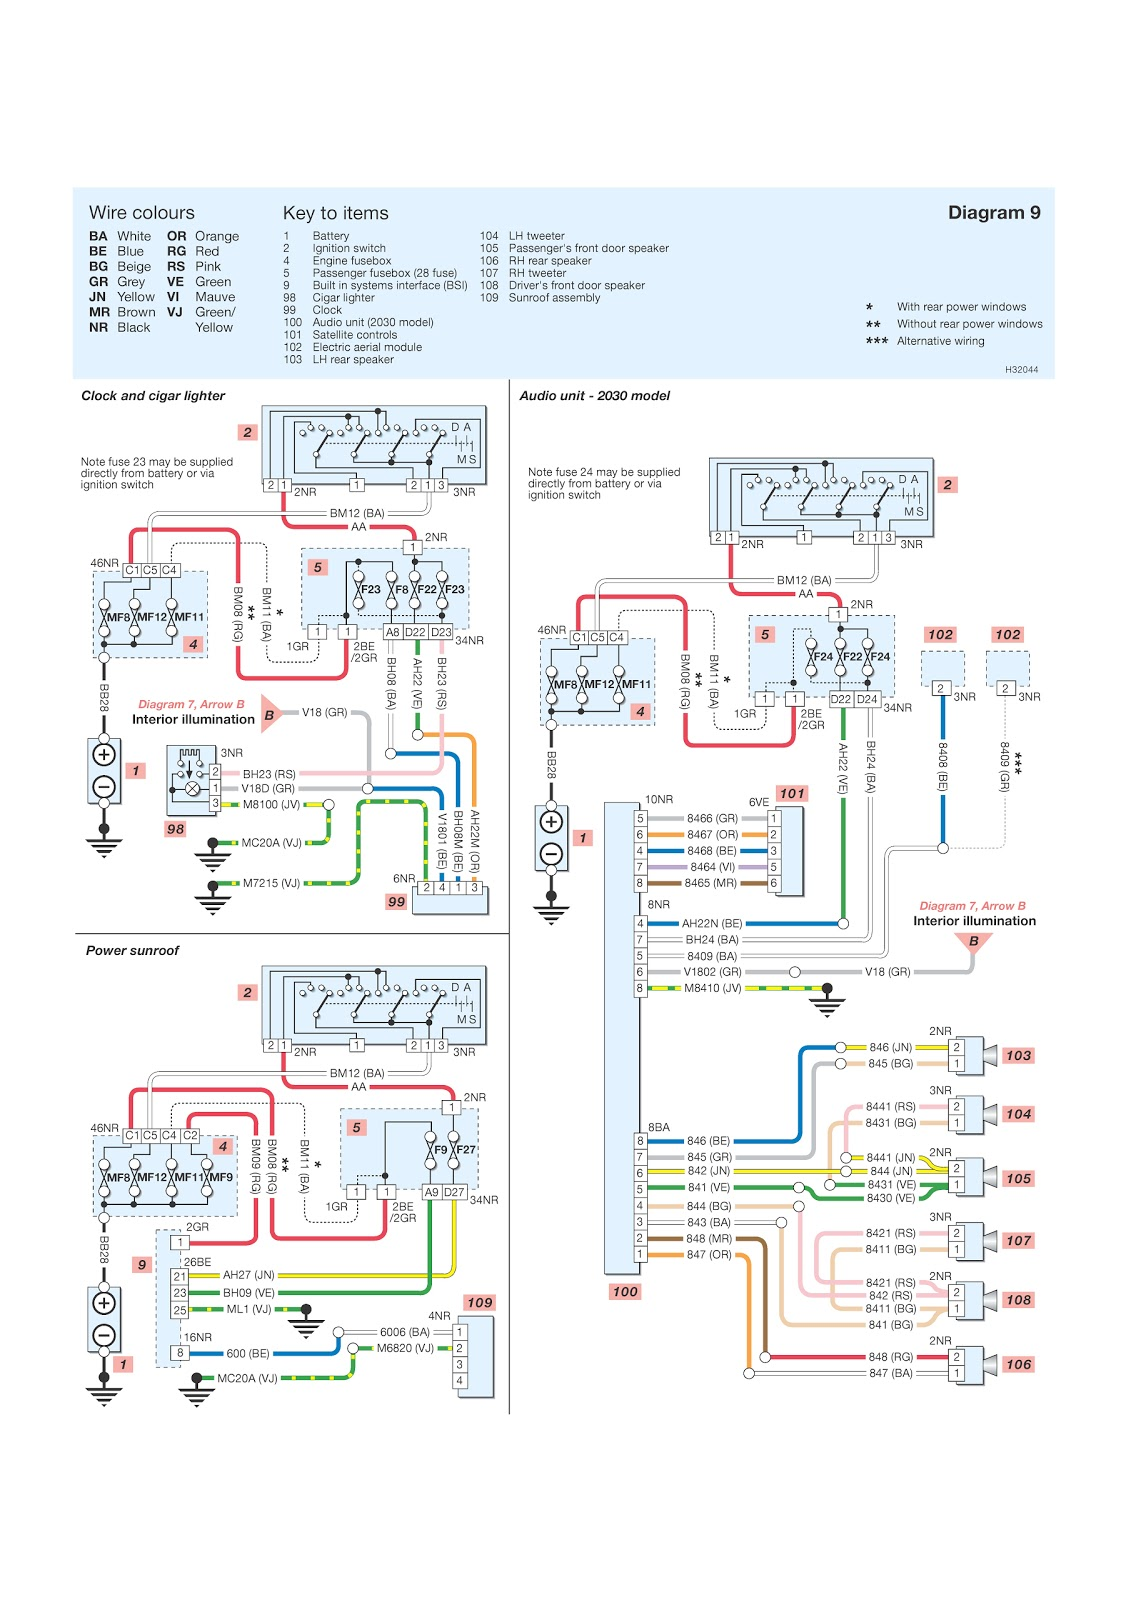 Peugeot 206 Kfw Wiring Diagram : Peugeot system wiring diagrams clock cigar lighter